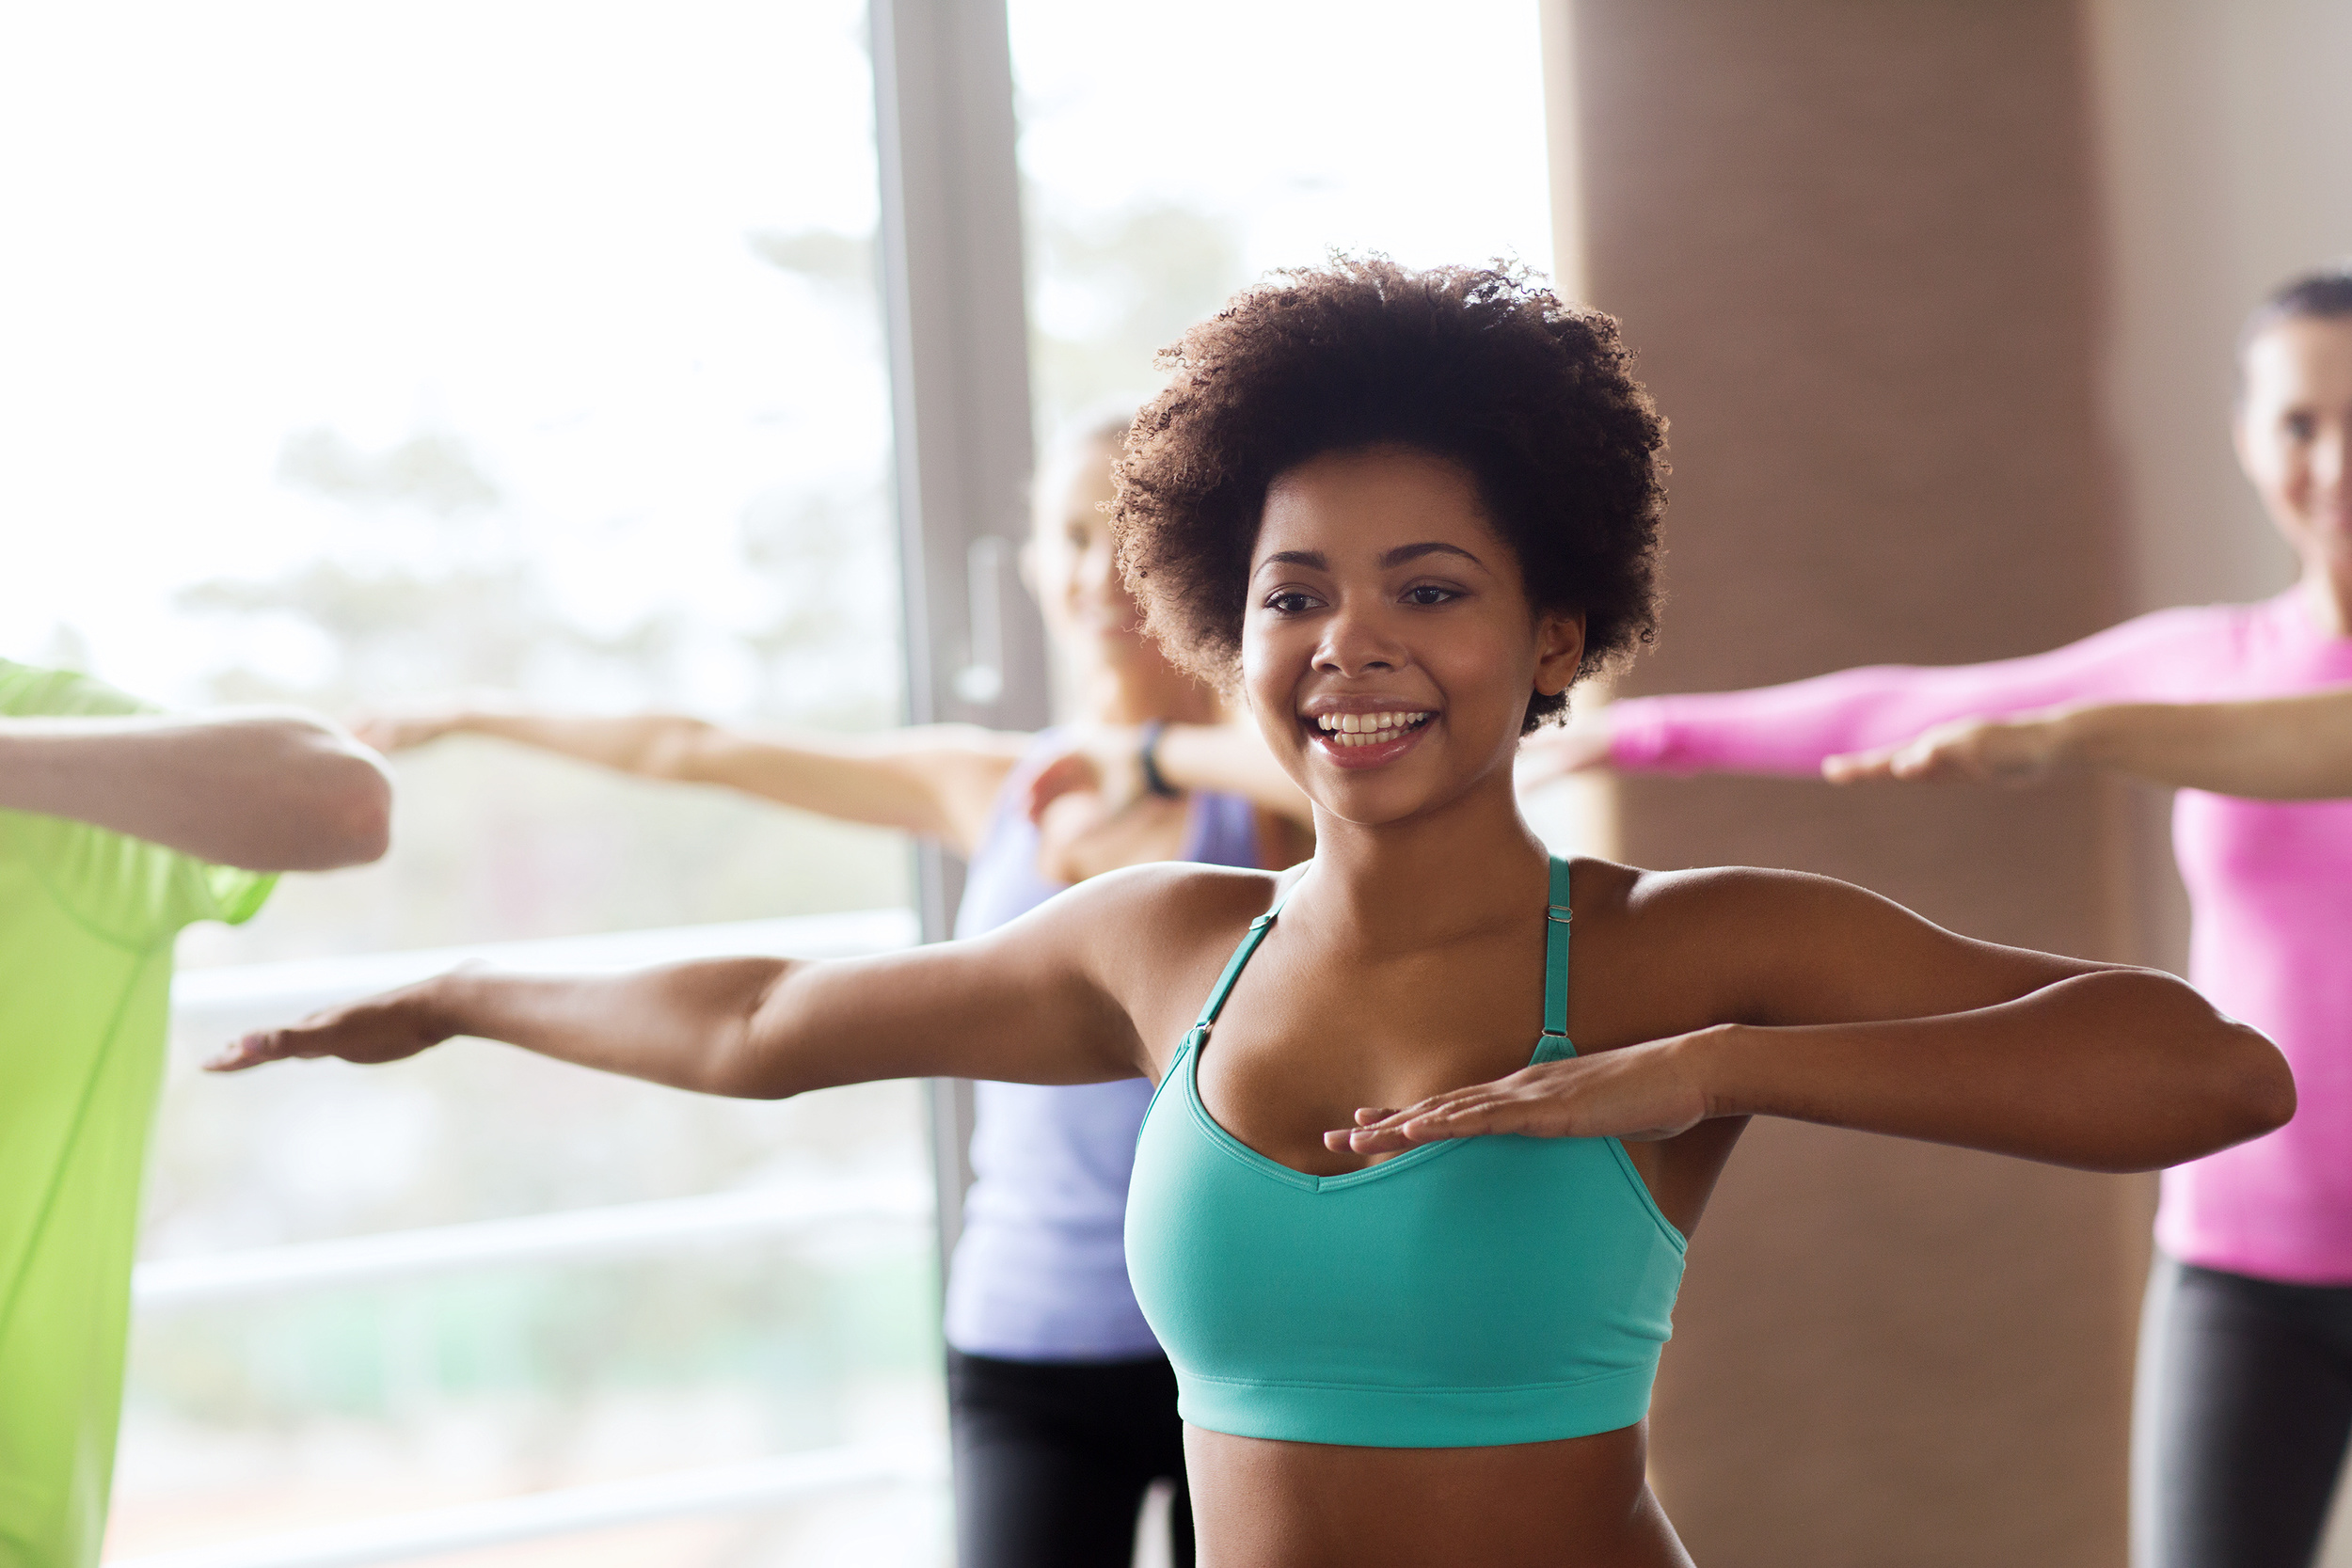 You never thought  liking  exercise could happen to you, did you?